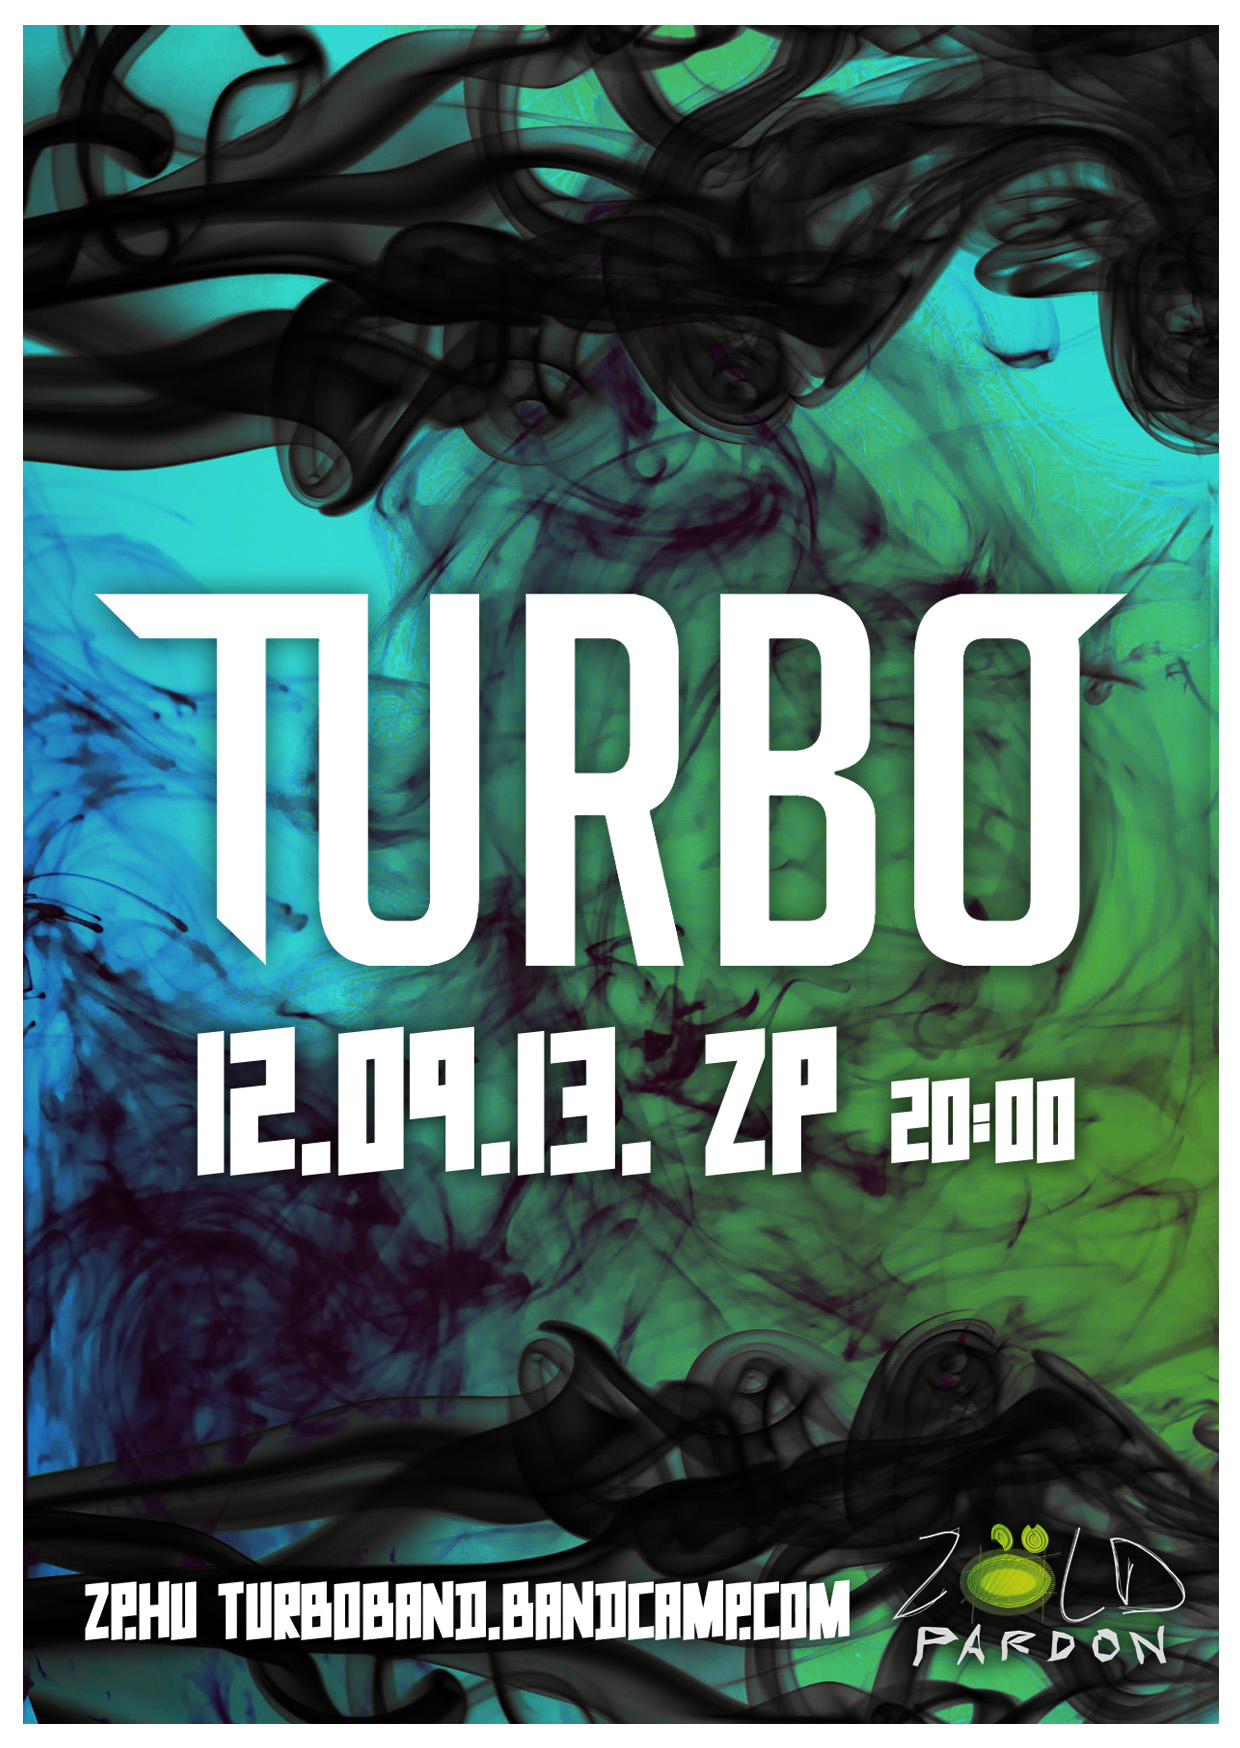 Flyer_turbo_zp_01.jpg